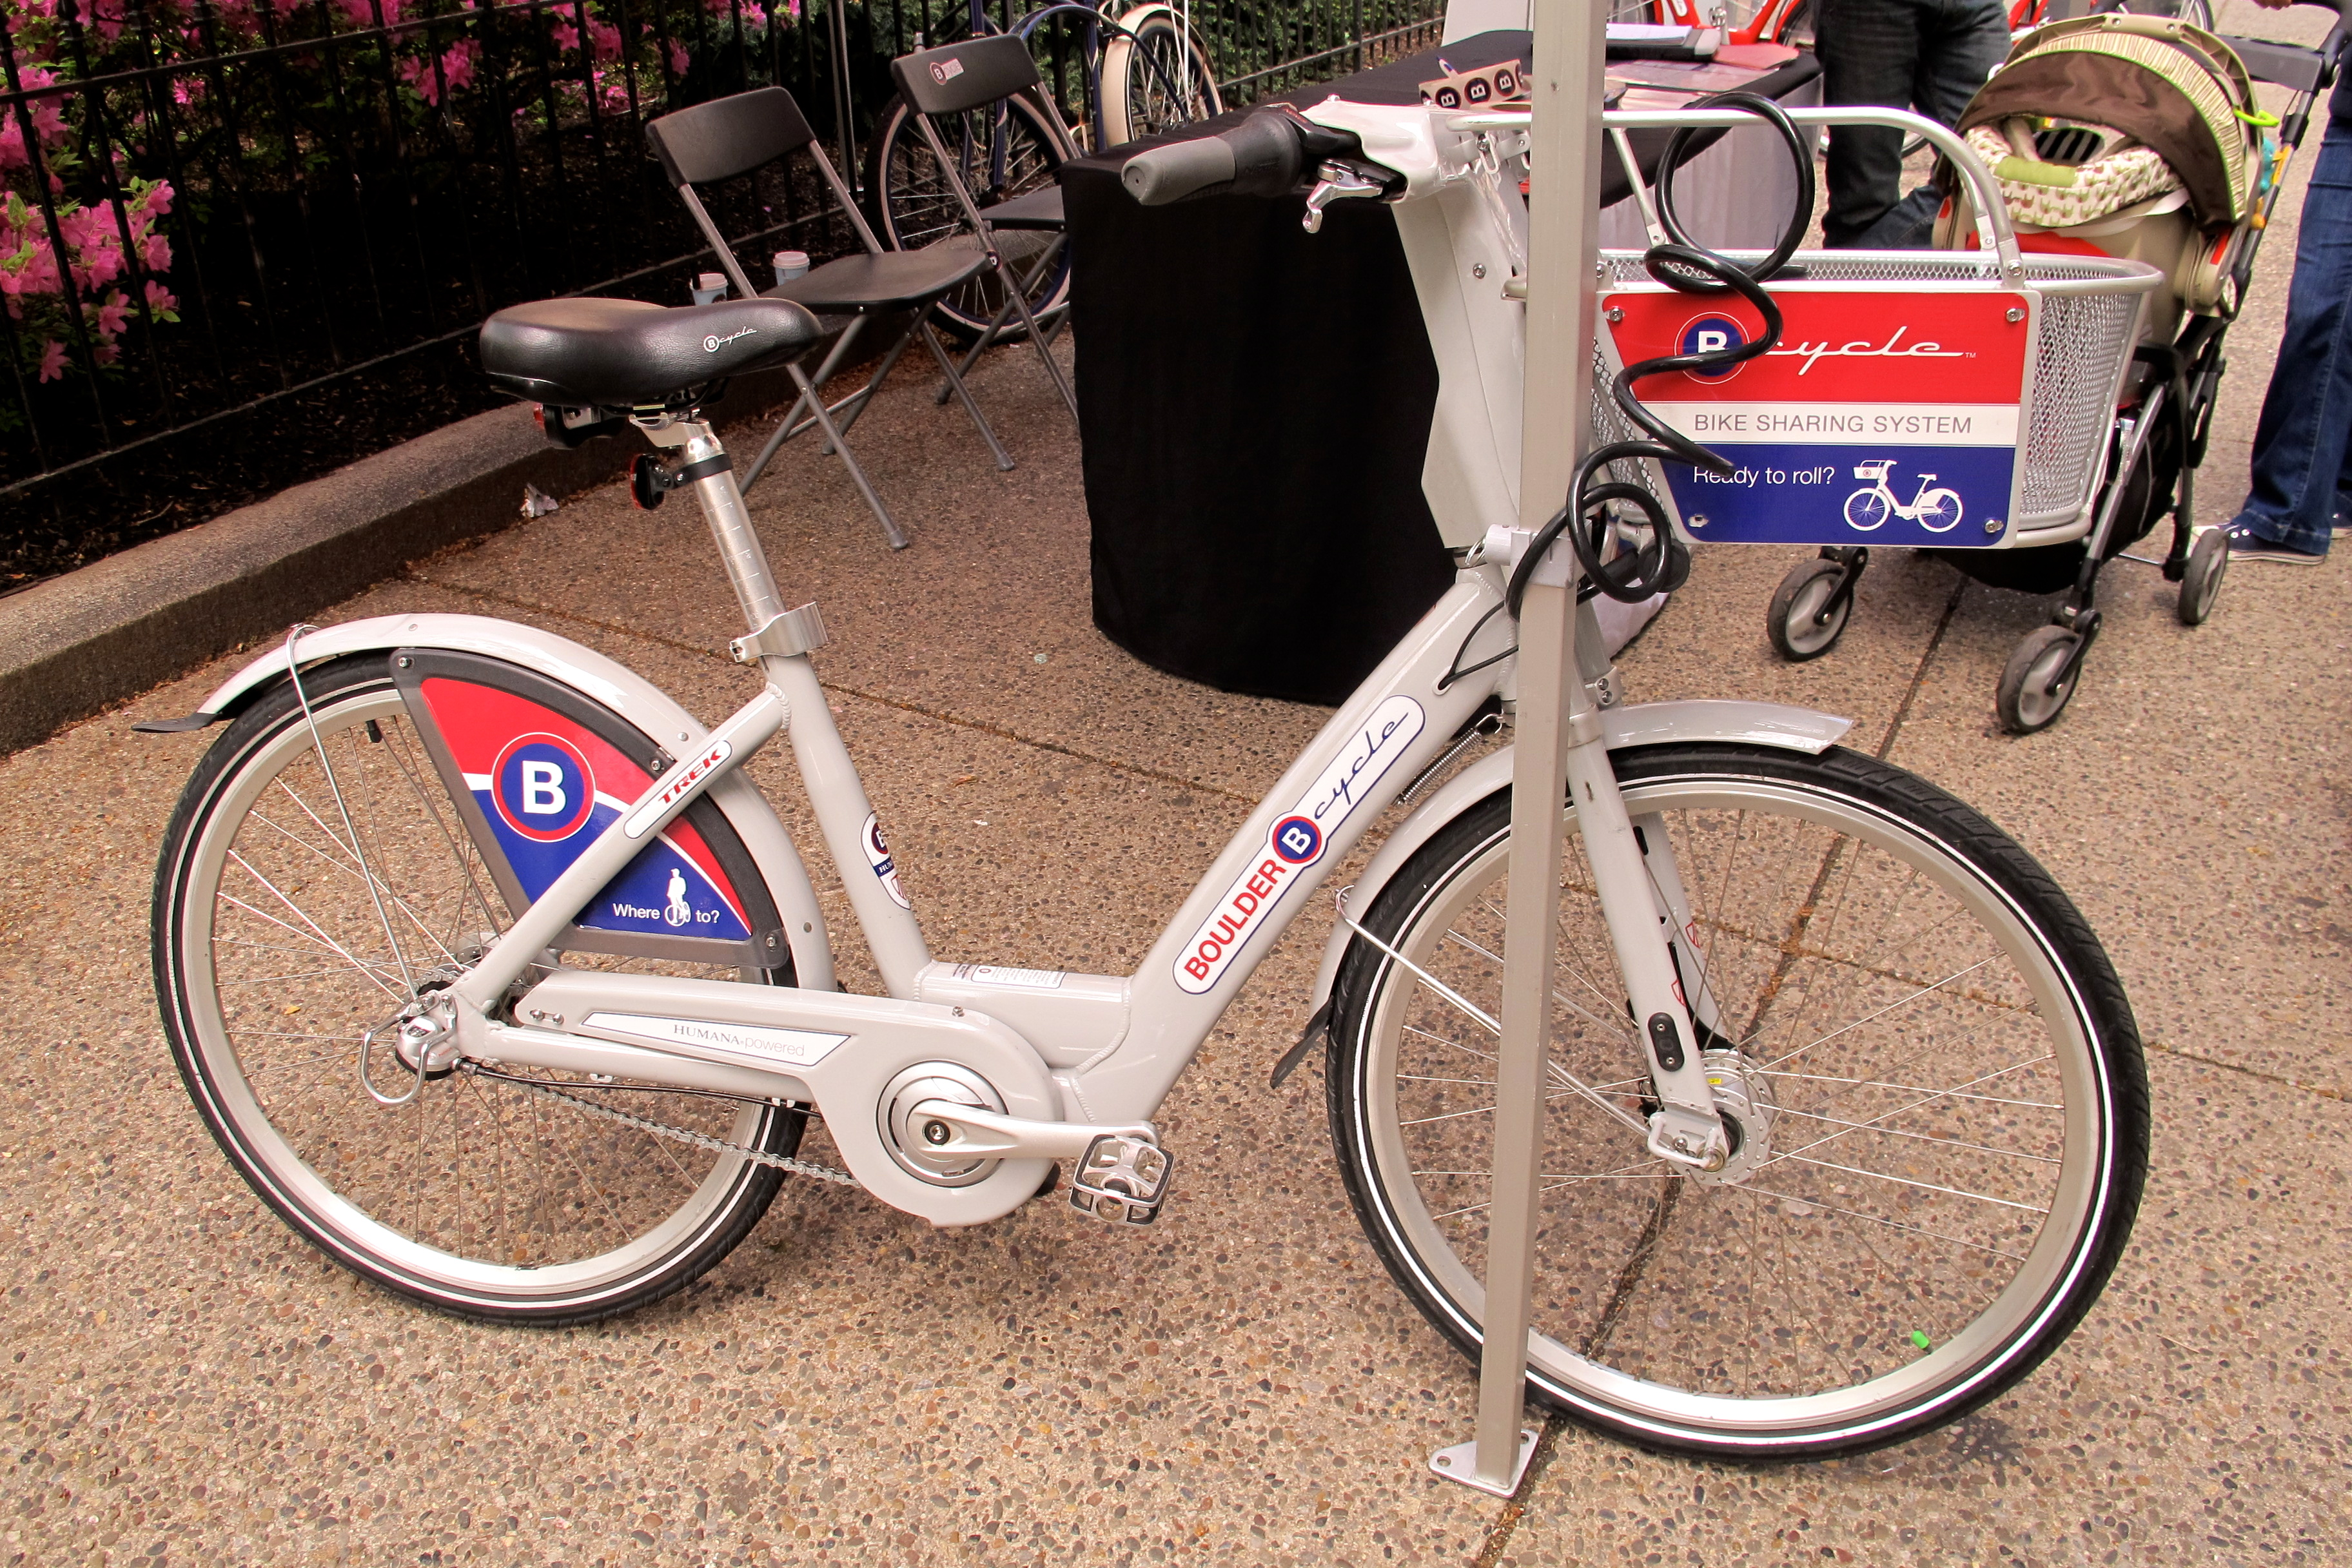 B-Cycle bike from Boulder's bike share system